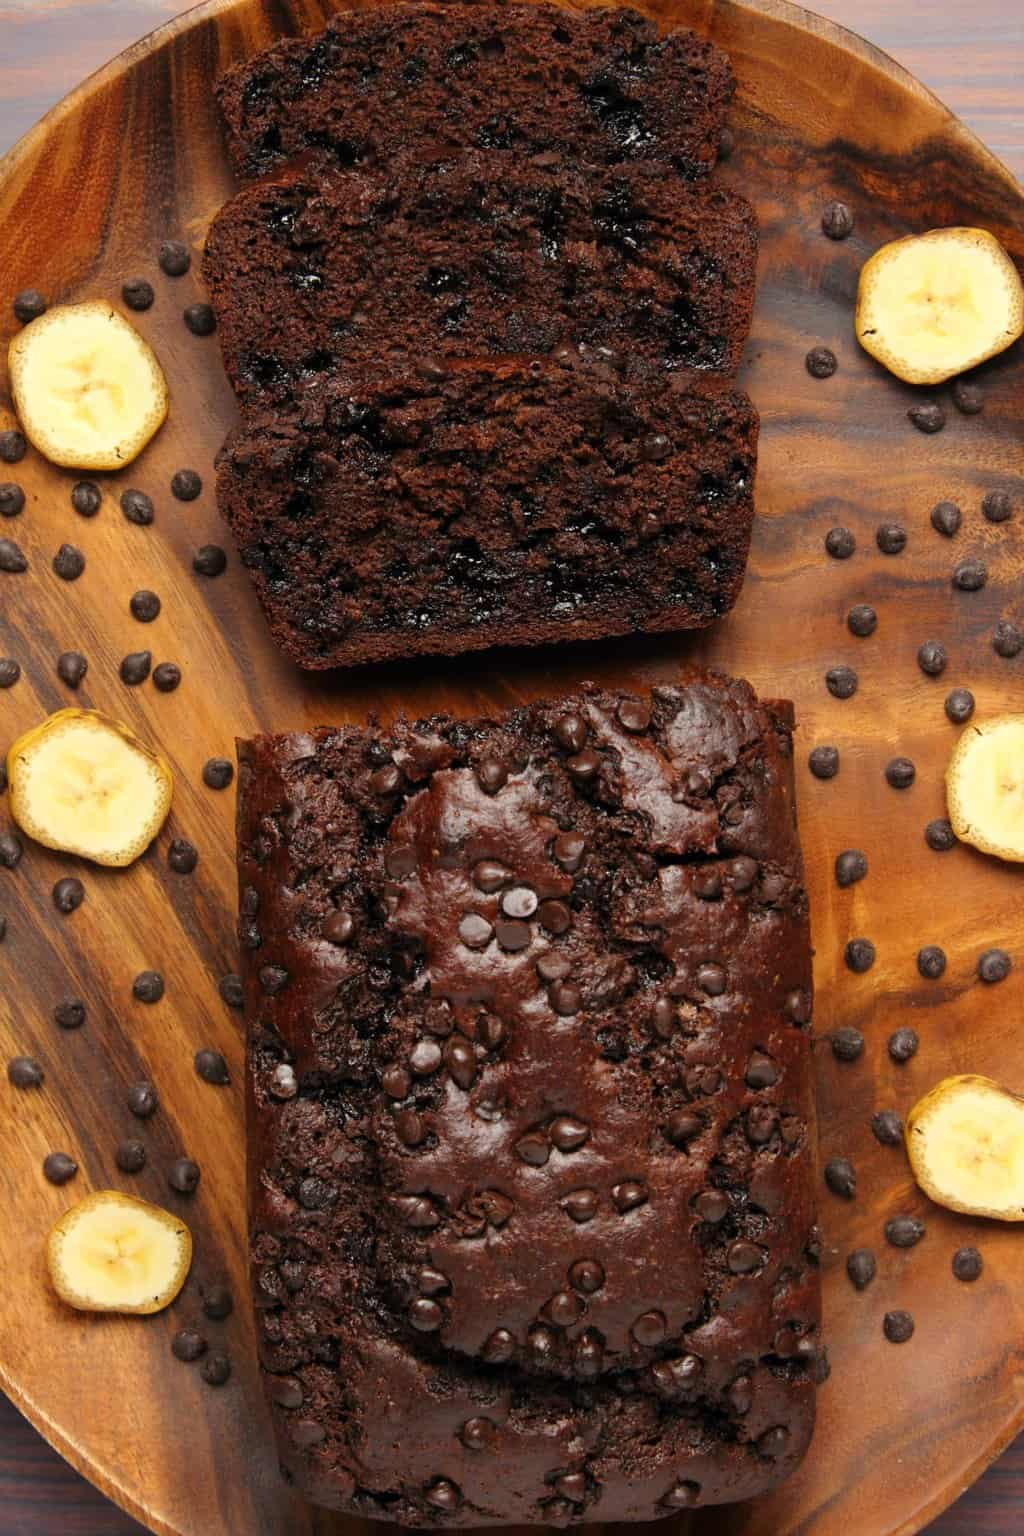 Vegan chocolate banana bread sliced on a wooden plate.